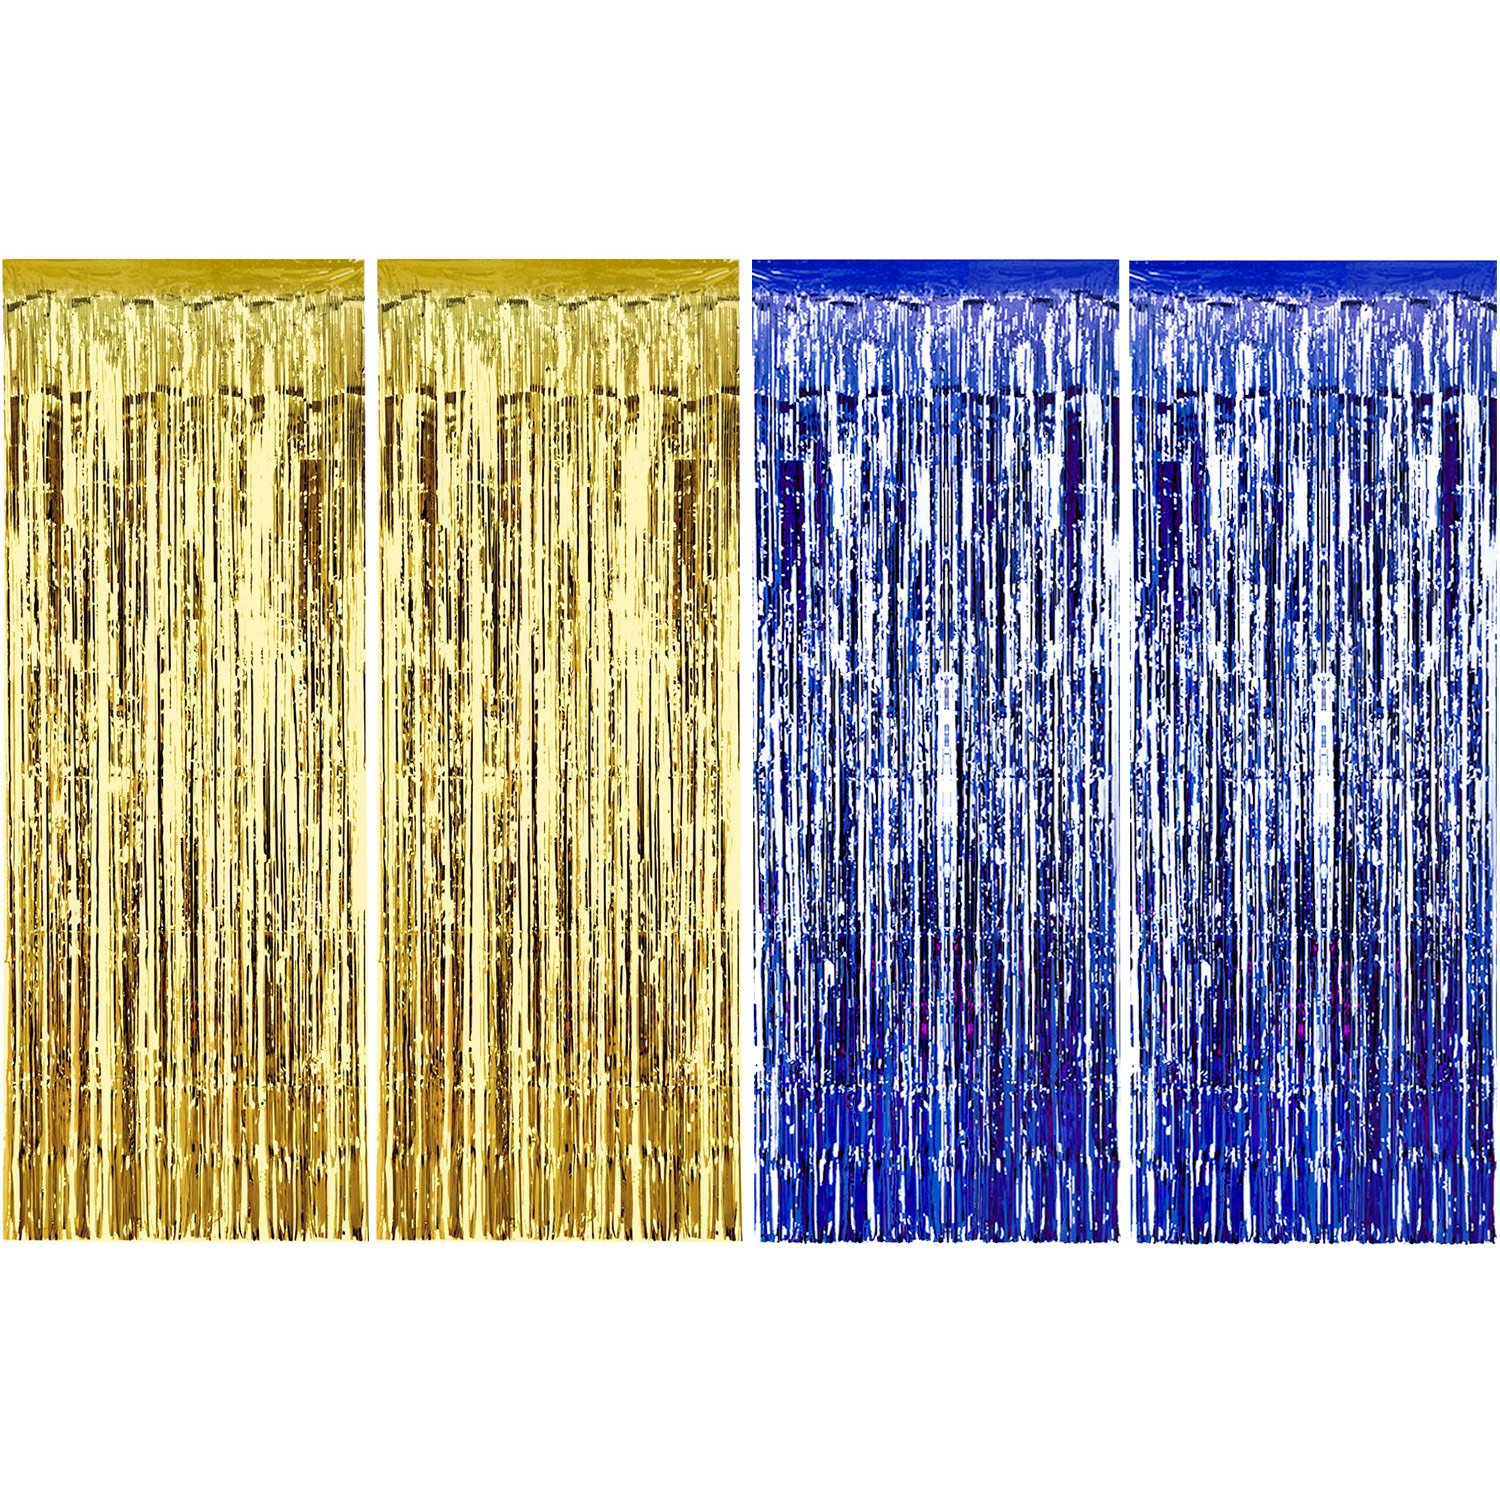 4 Pack Foil Curtains Metallic Fringe Curtains Shimmer Curtain for Birthday Wedding Party Christmas Decorations (Black) Sumind